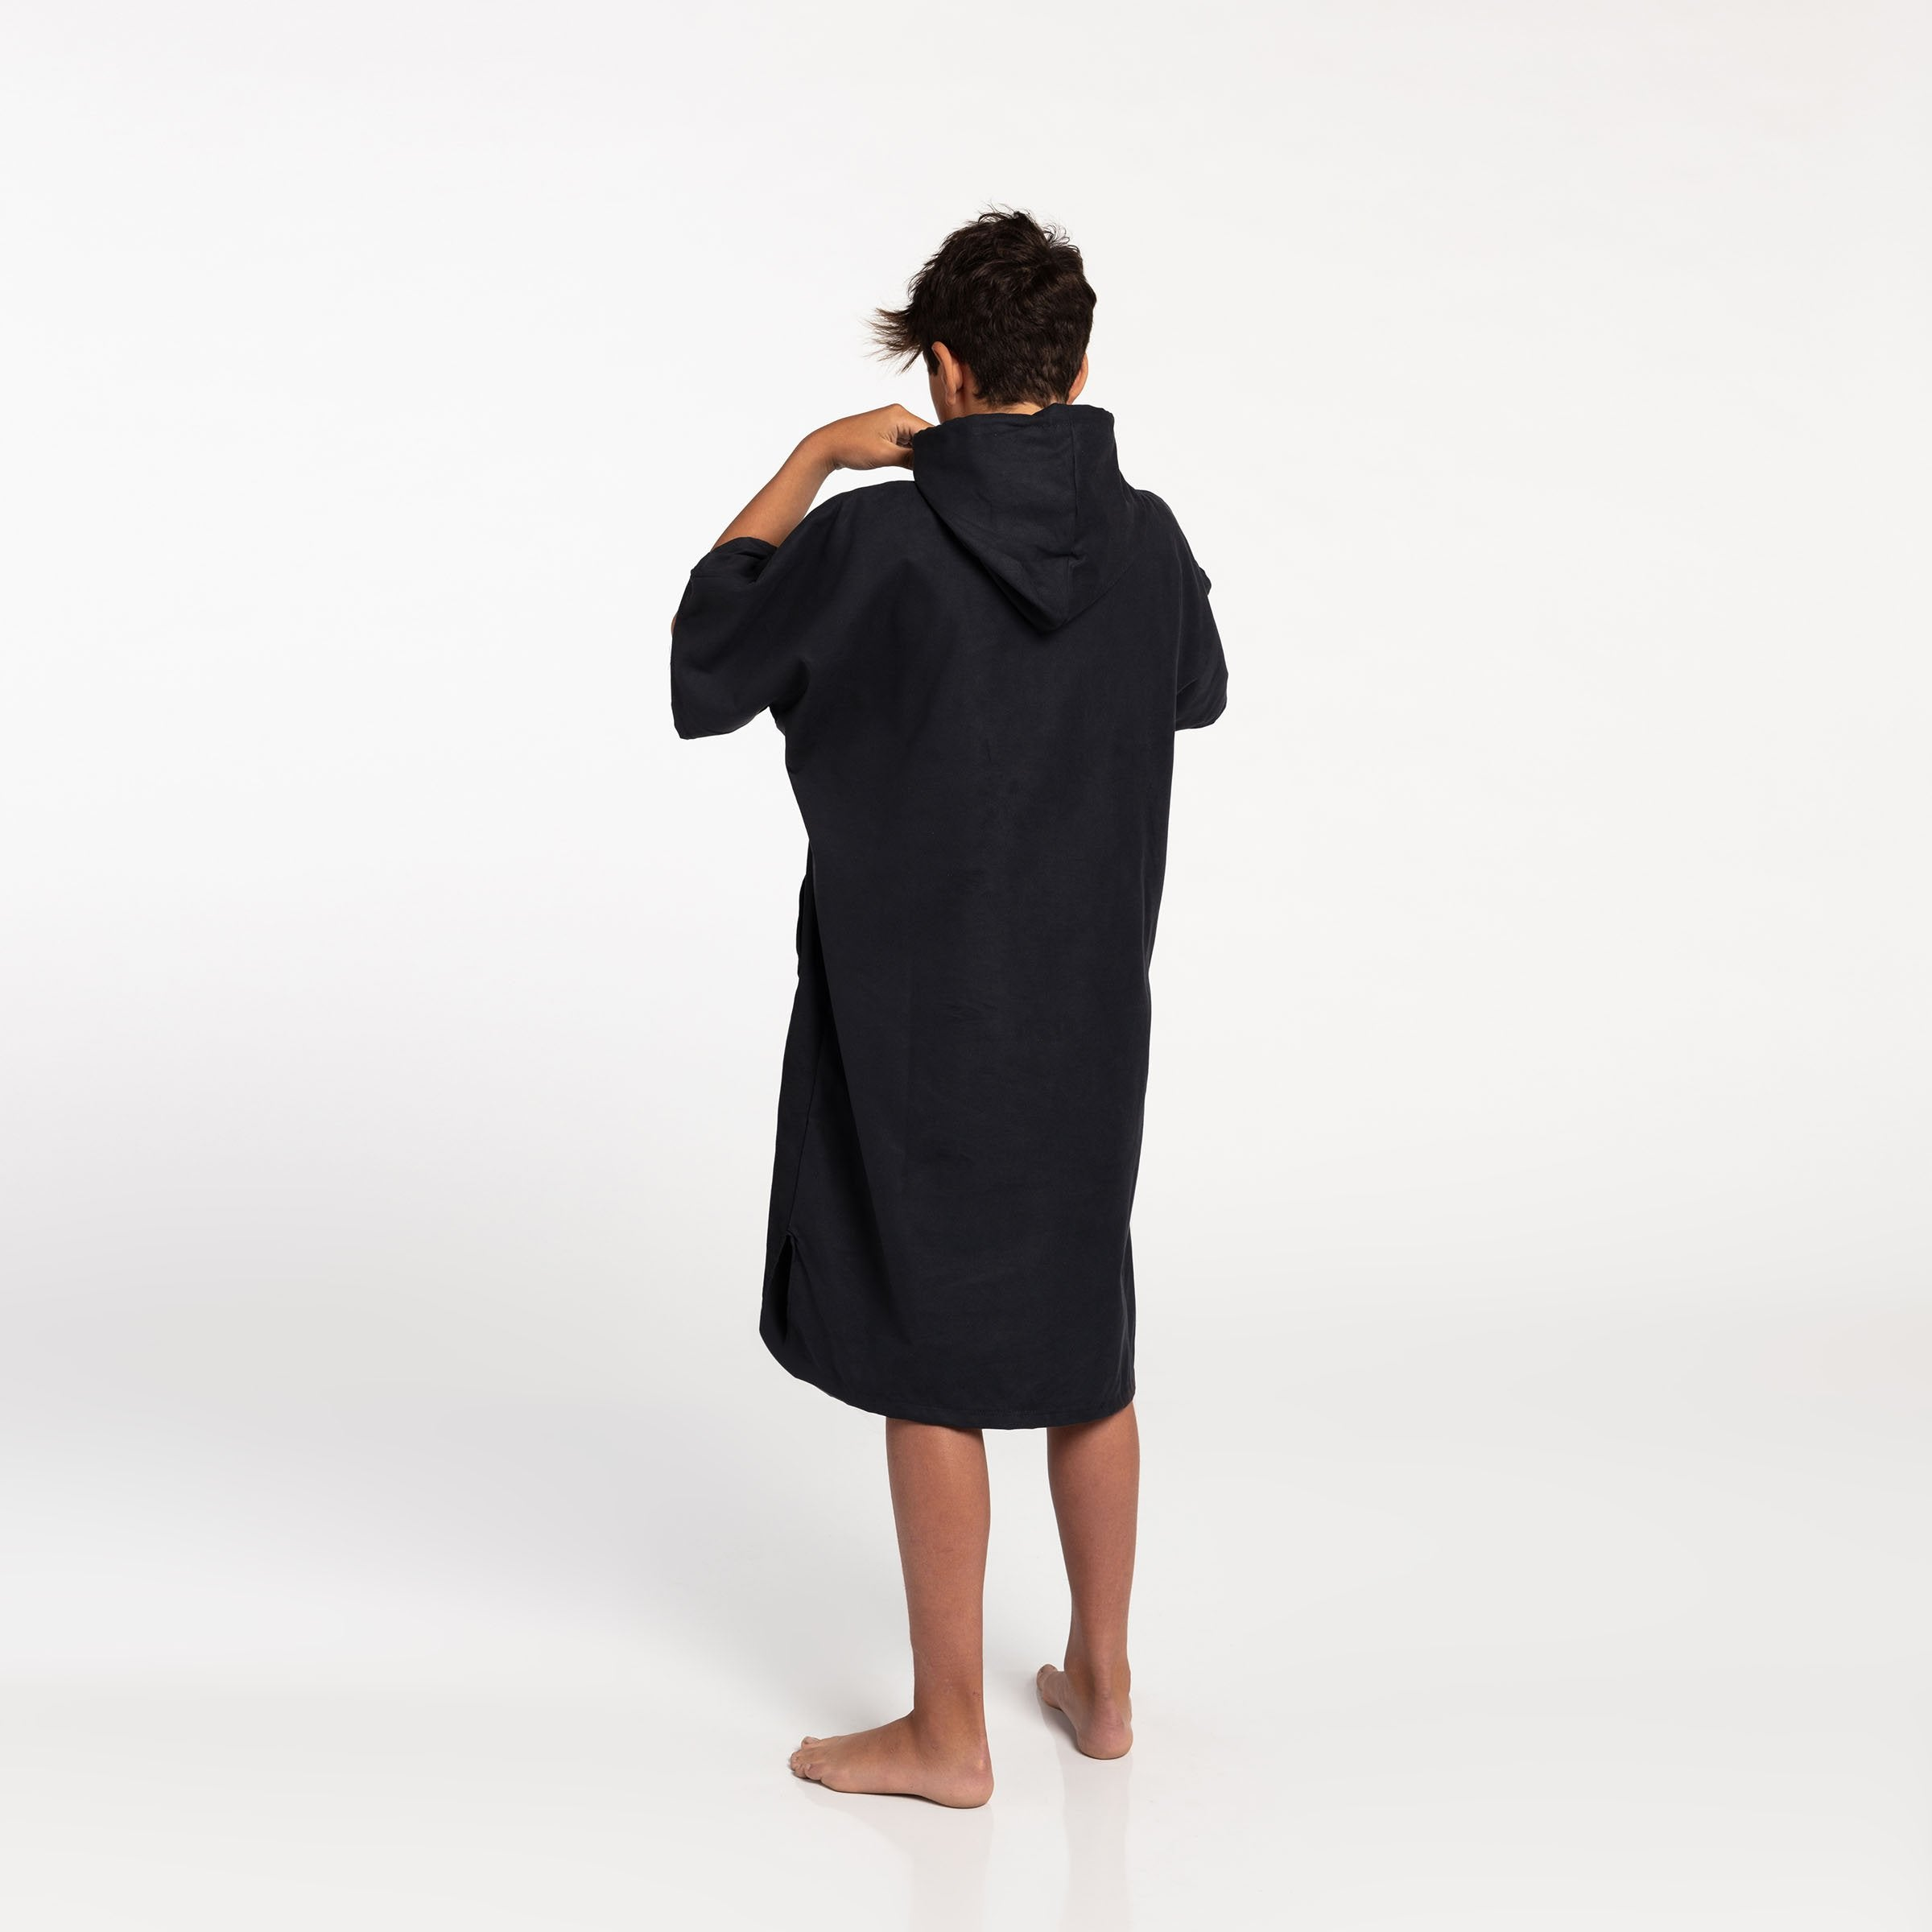 All Day Quick-Dry Changing Poncho - Small / Medium